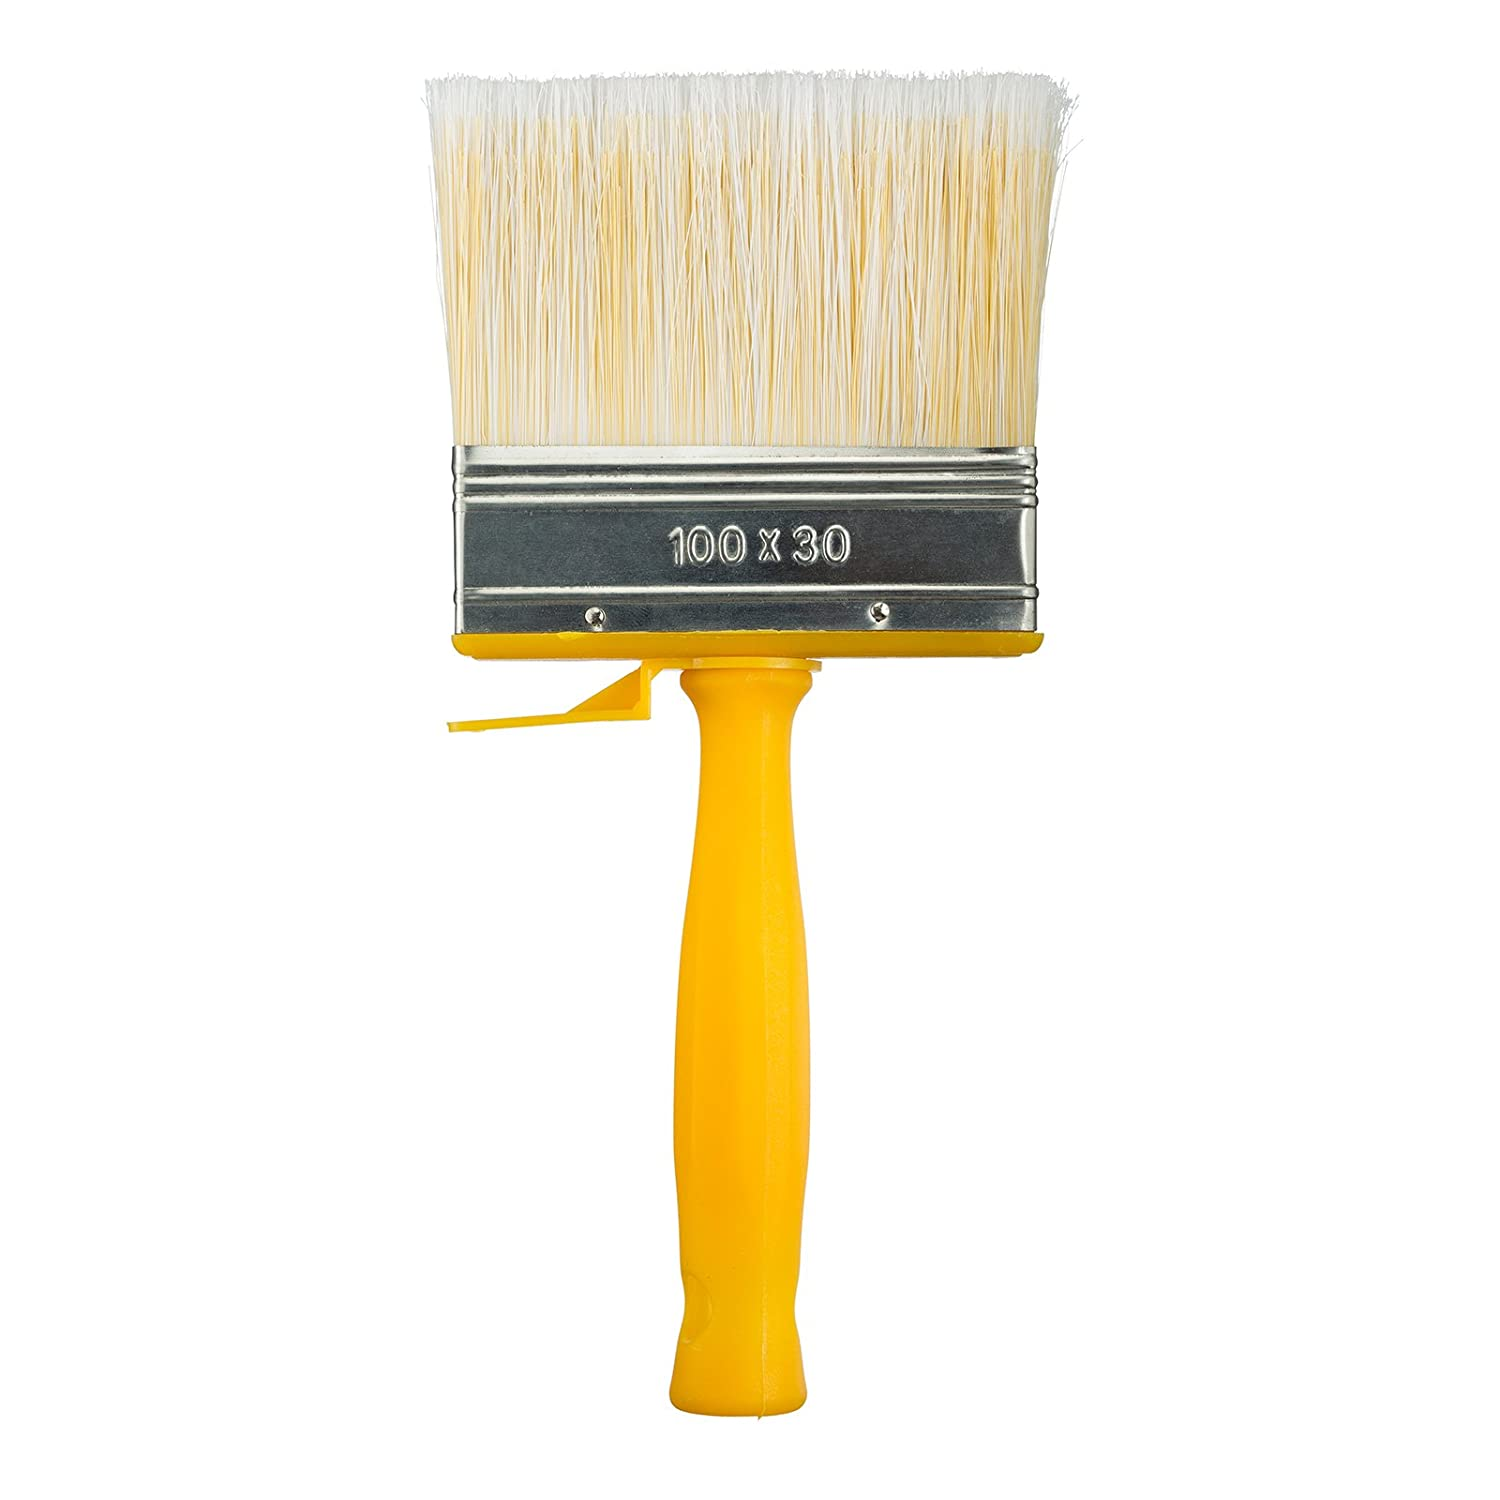 Coral 31310 Essentials Paint Brushes with a Block Brush and Flat Paintbrushes 4 piece pack set CORAL Tools Ltd